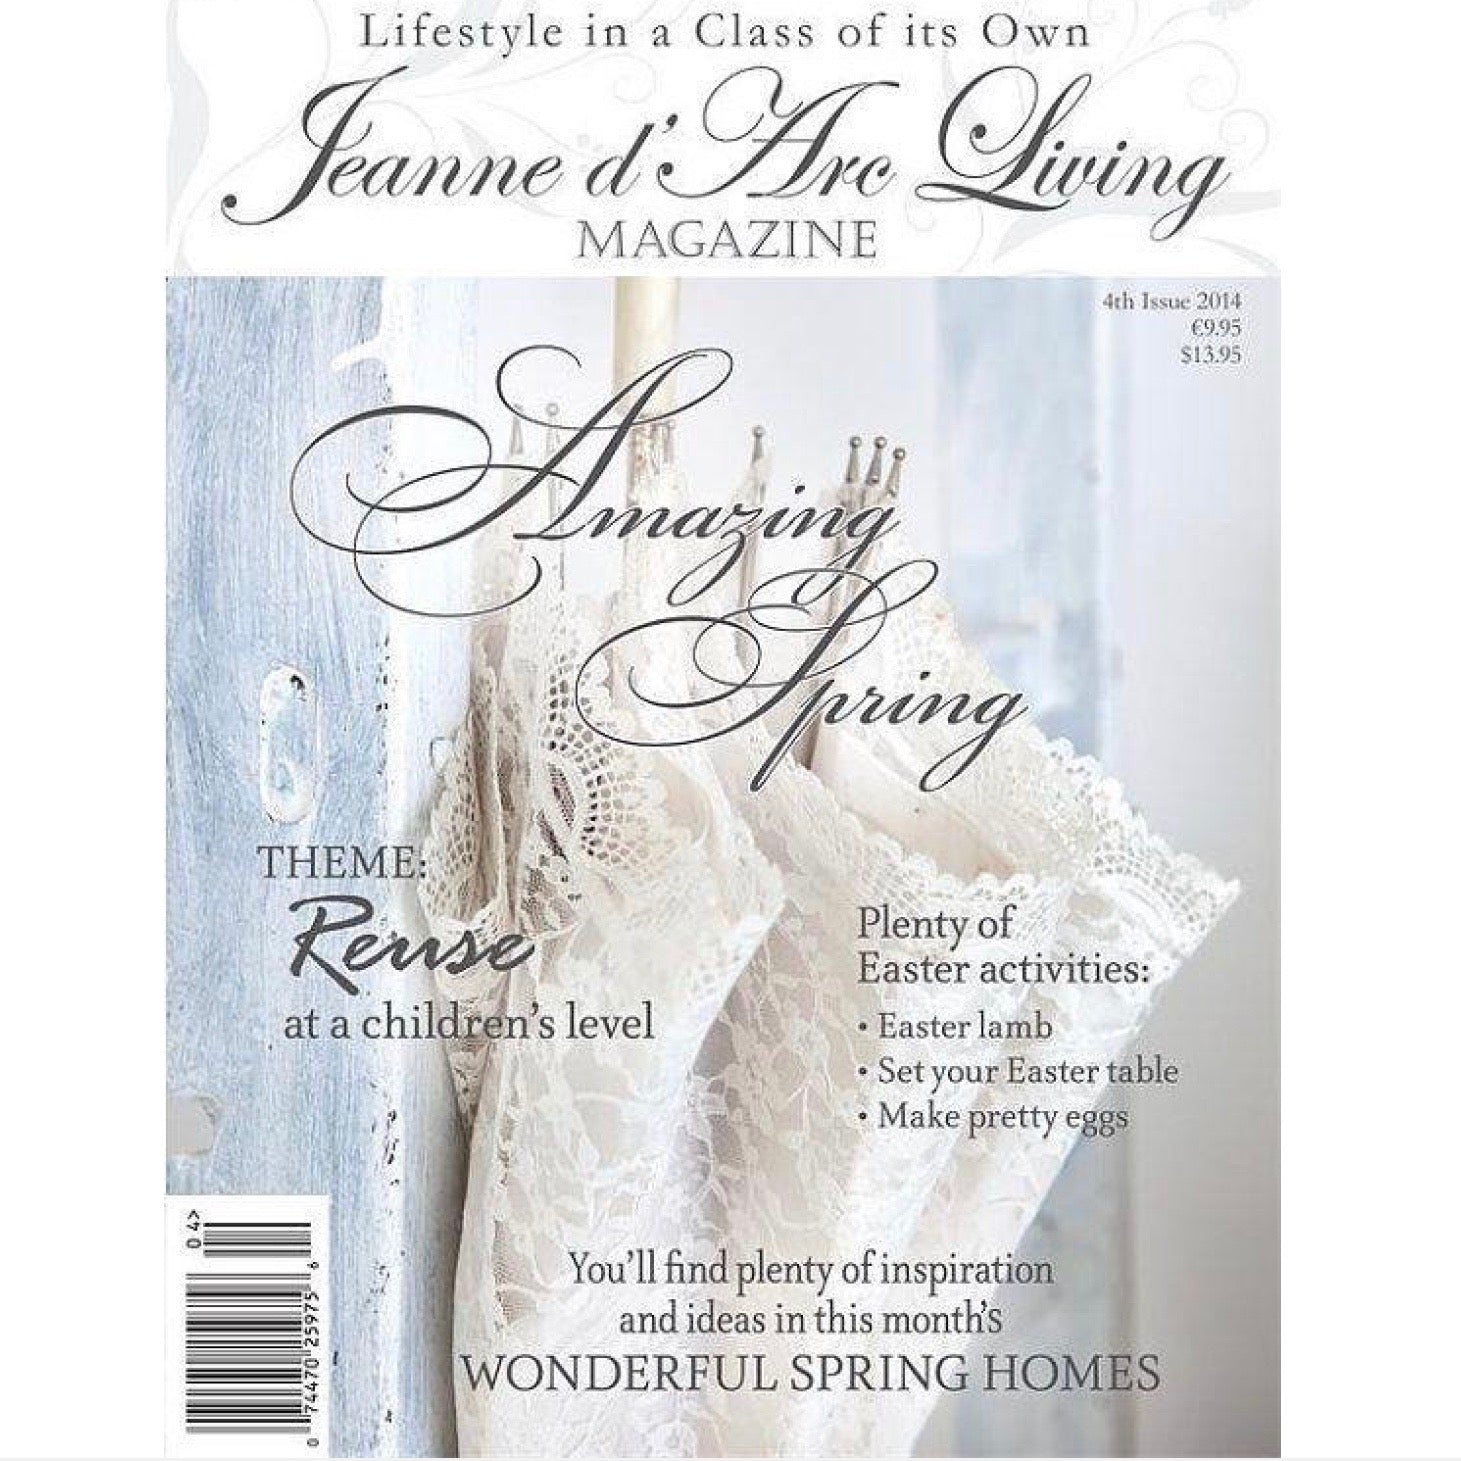 Jeanne d'Arc Living Magazine Back Issues 50% off Sale